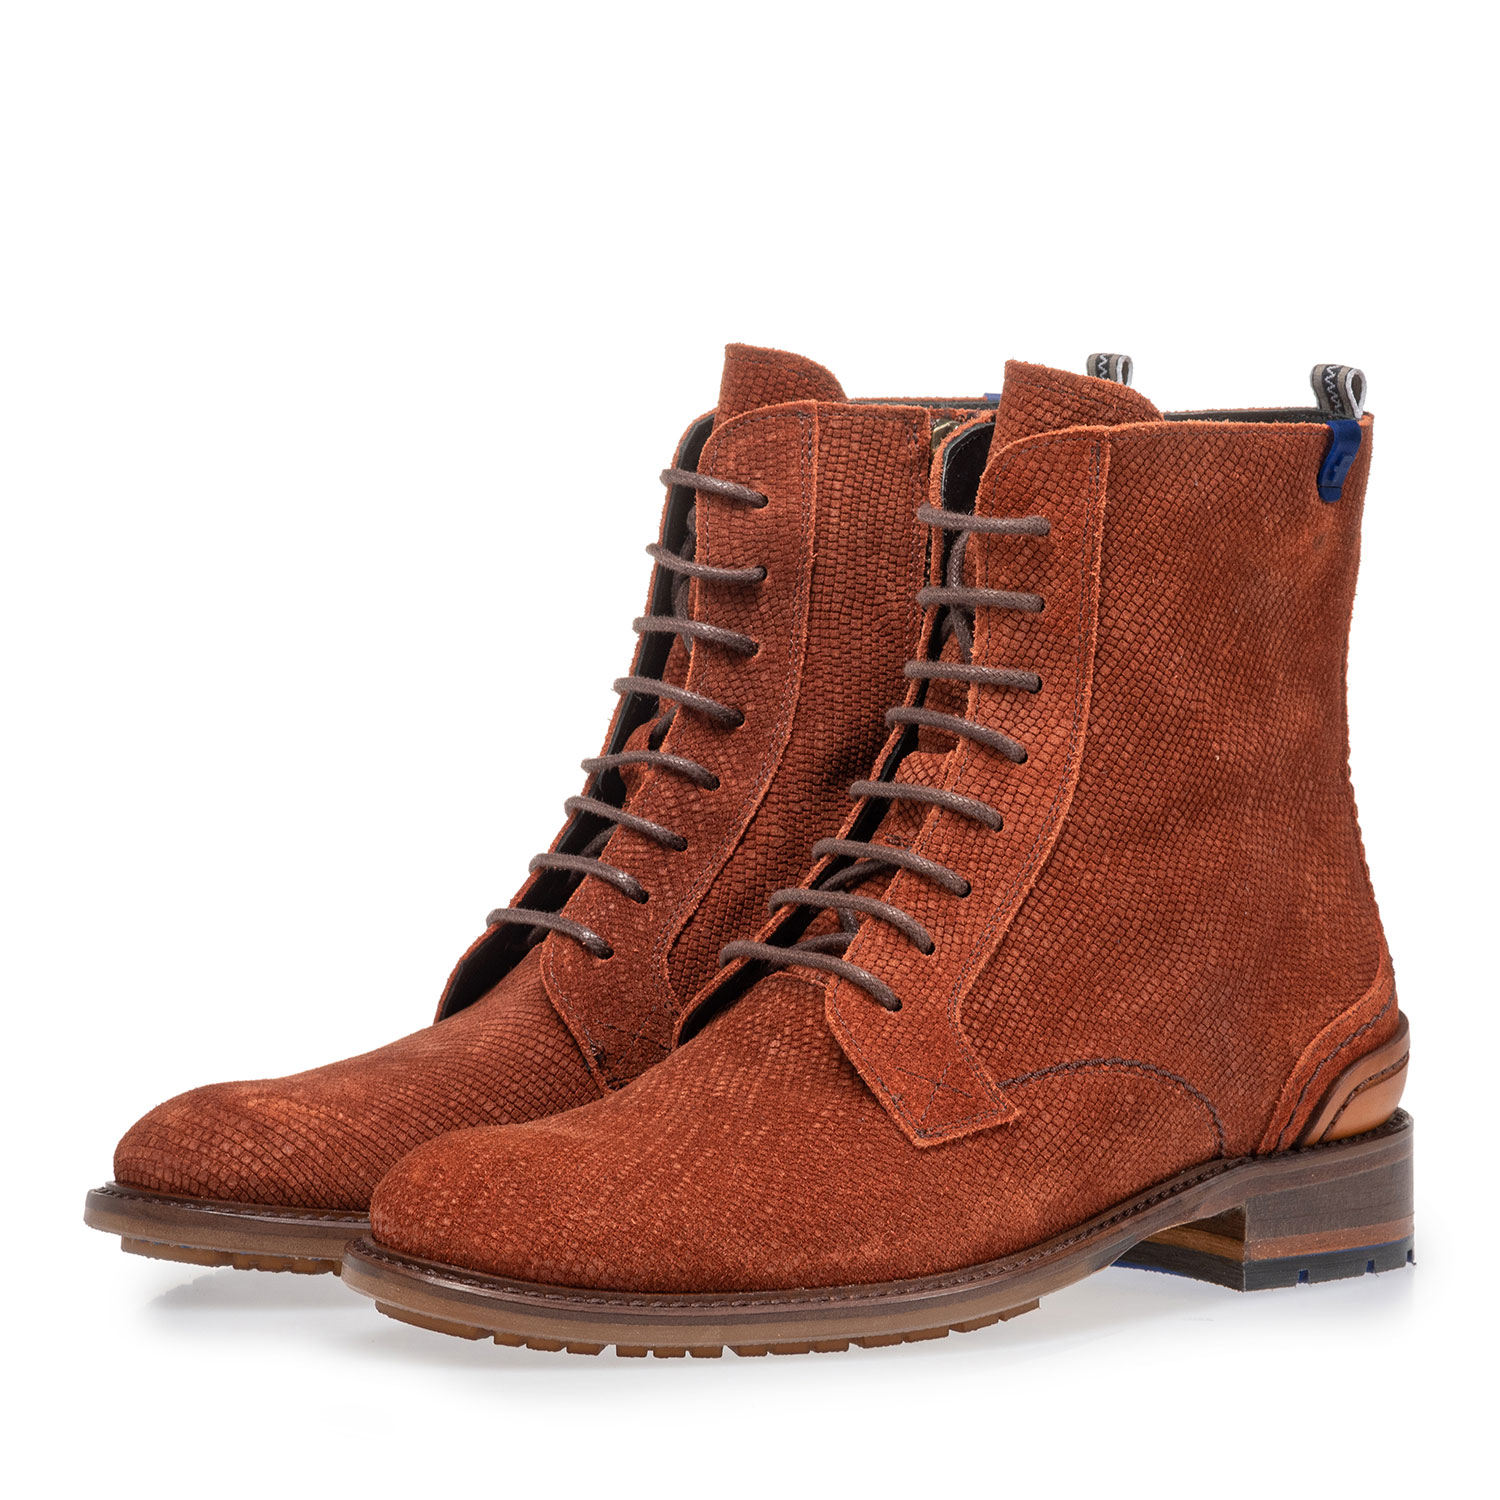 85644/05 - Lace boot brown suede leather